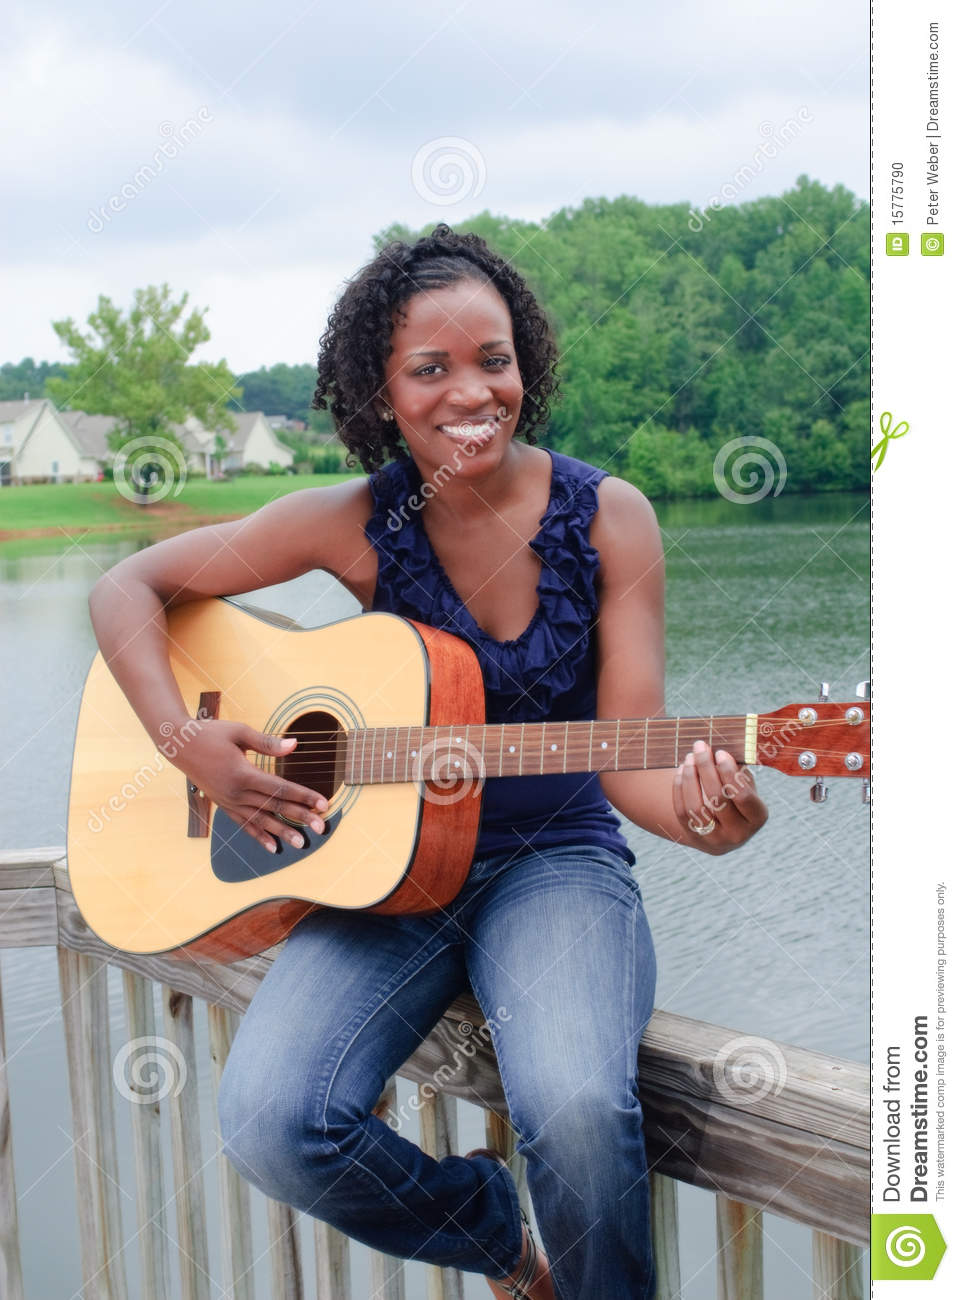 Wallpaper Of Cute Girl With Guitar Black Woman With Guitar Stock Photo Image Of Human Girl